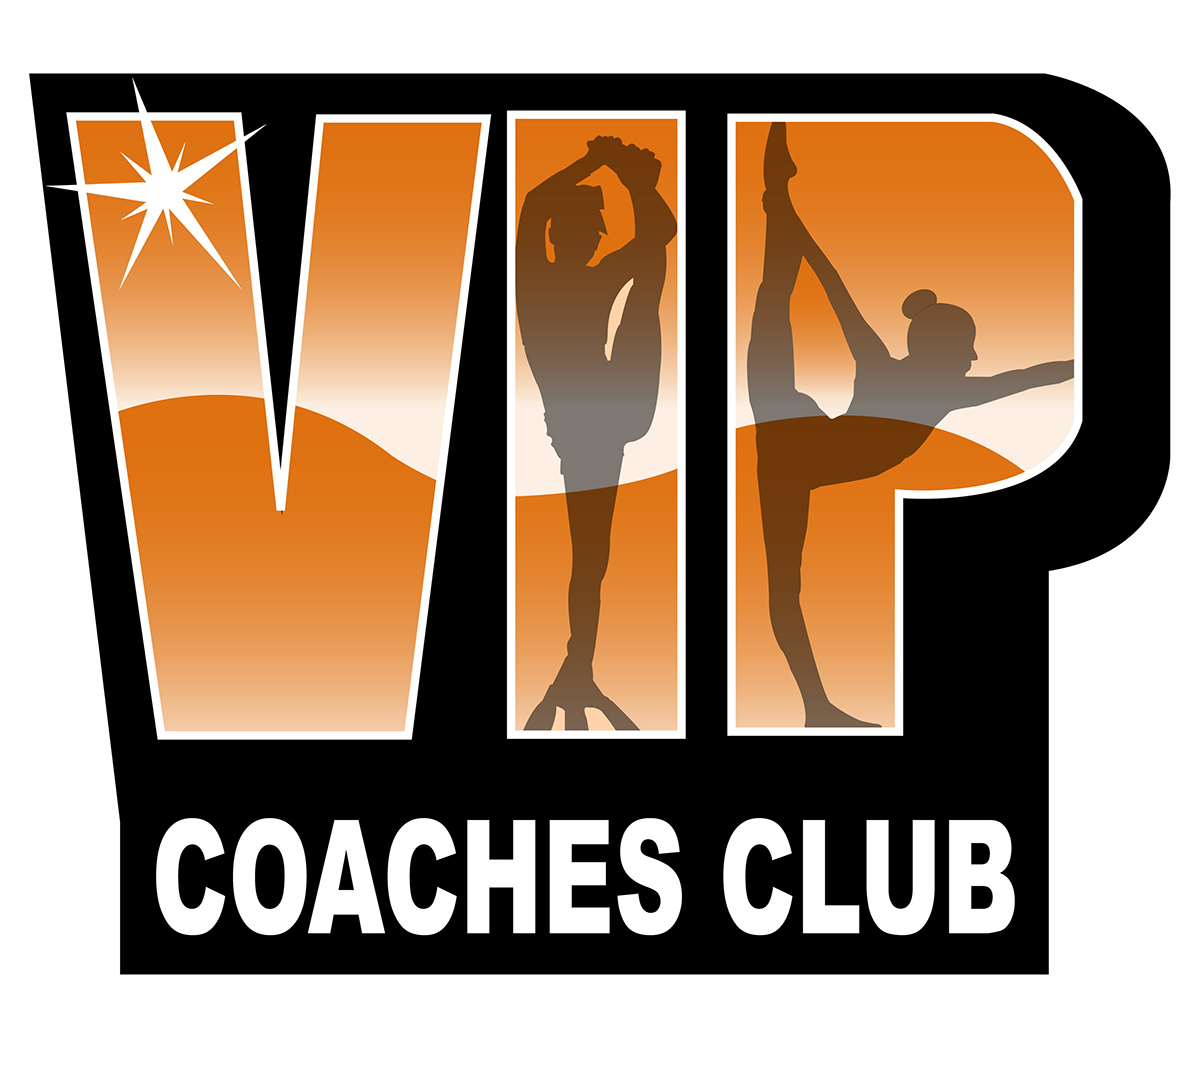 VIP Coaches Club